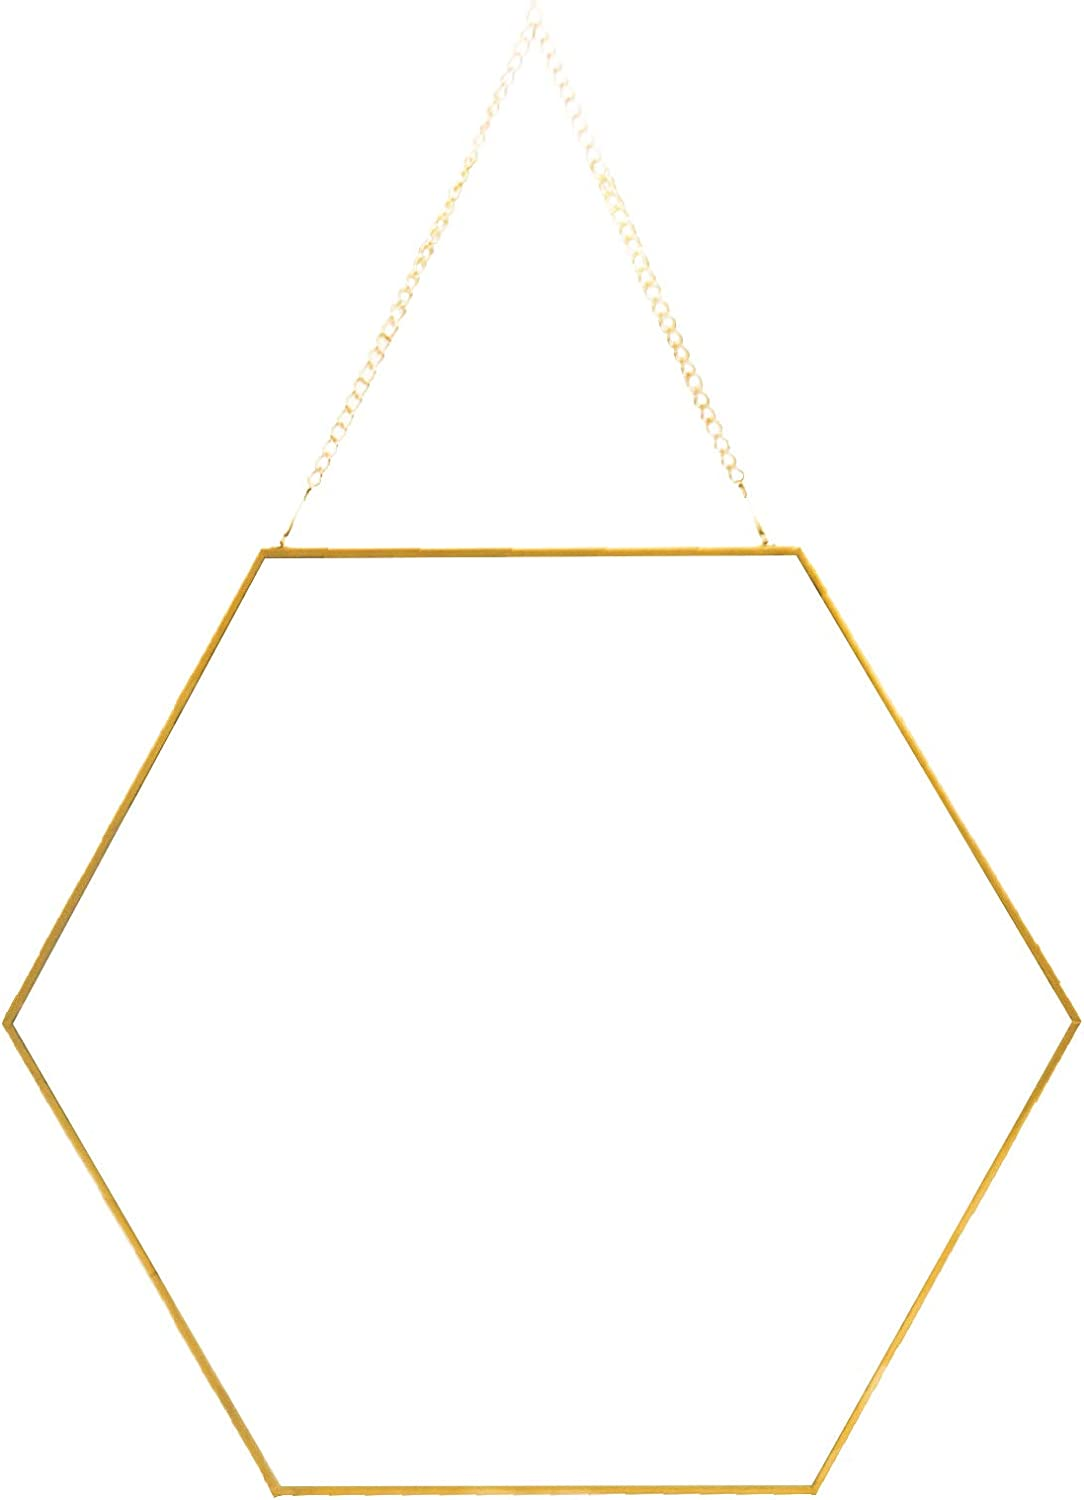 Hanging Hexagon Wall Mirror for Bathroom Living Room Bedroom, Small Gold Wall Mirror Décor with Chain, Decorative Gold Geometry Vanity Mirror with Chain Wall Mounted (13.39x15.75 inch)